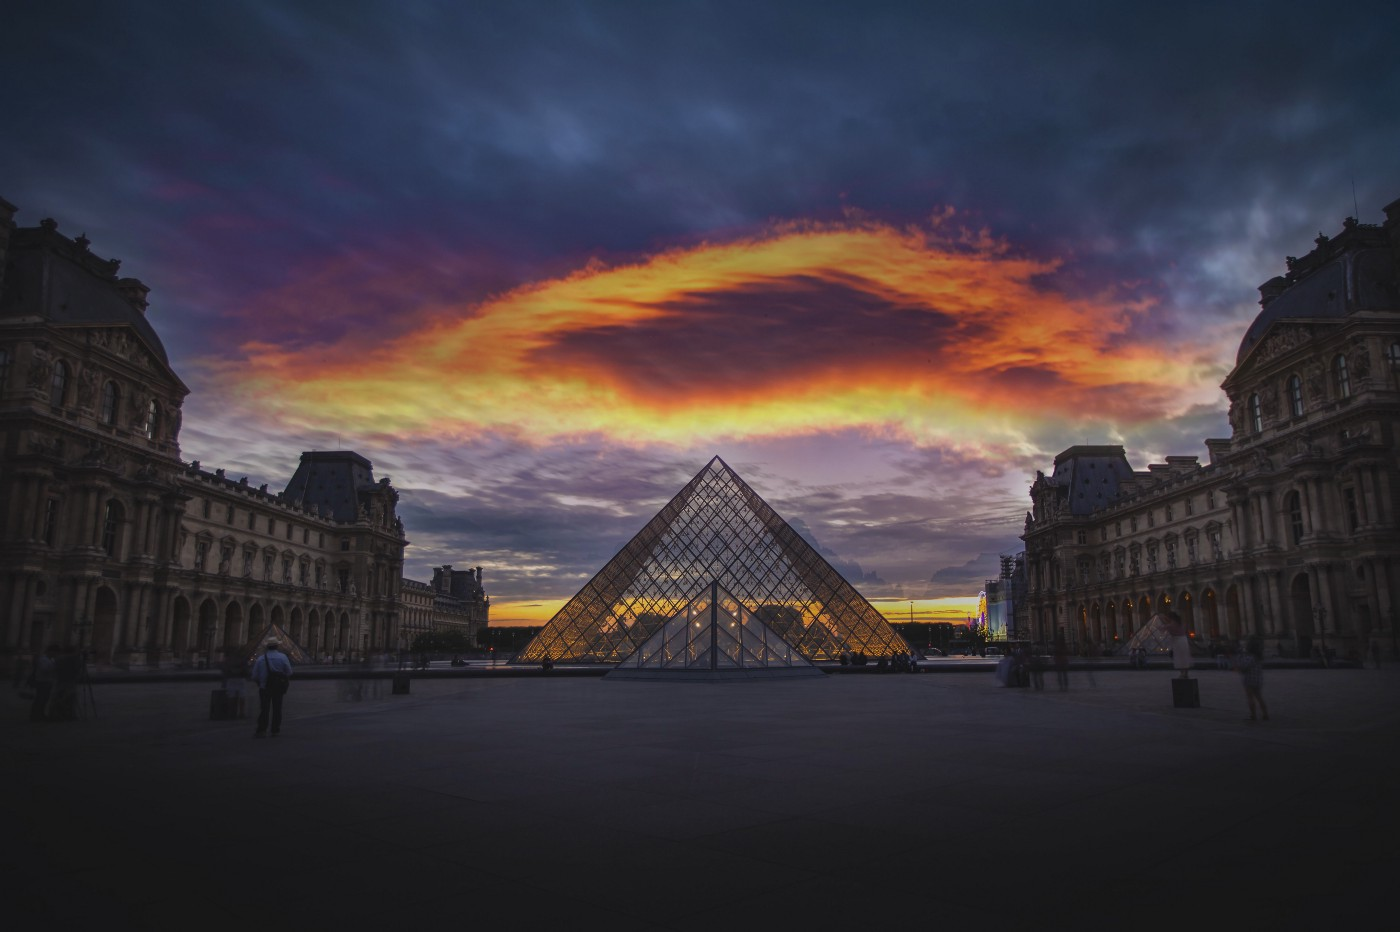 the Louvre museum seen at sunset